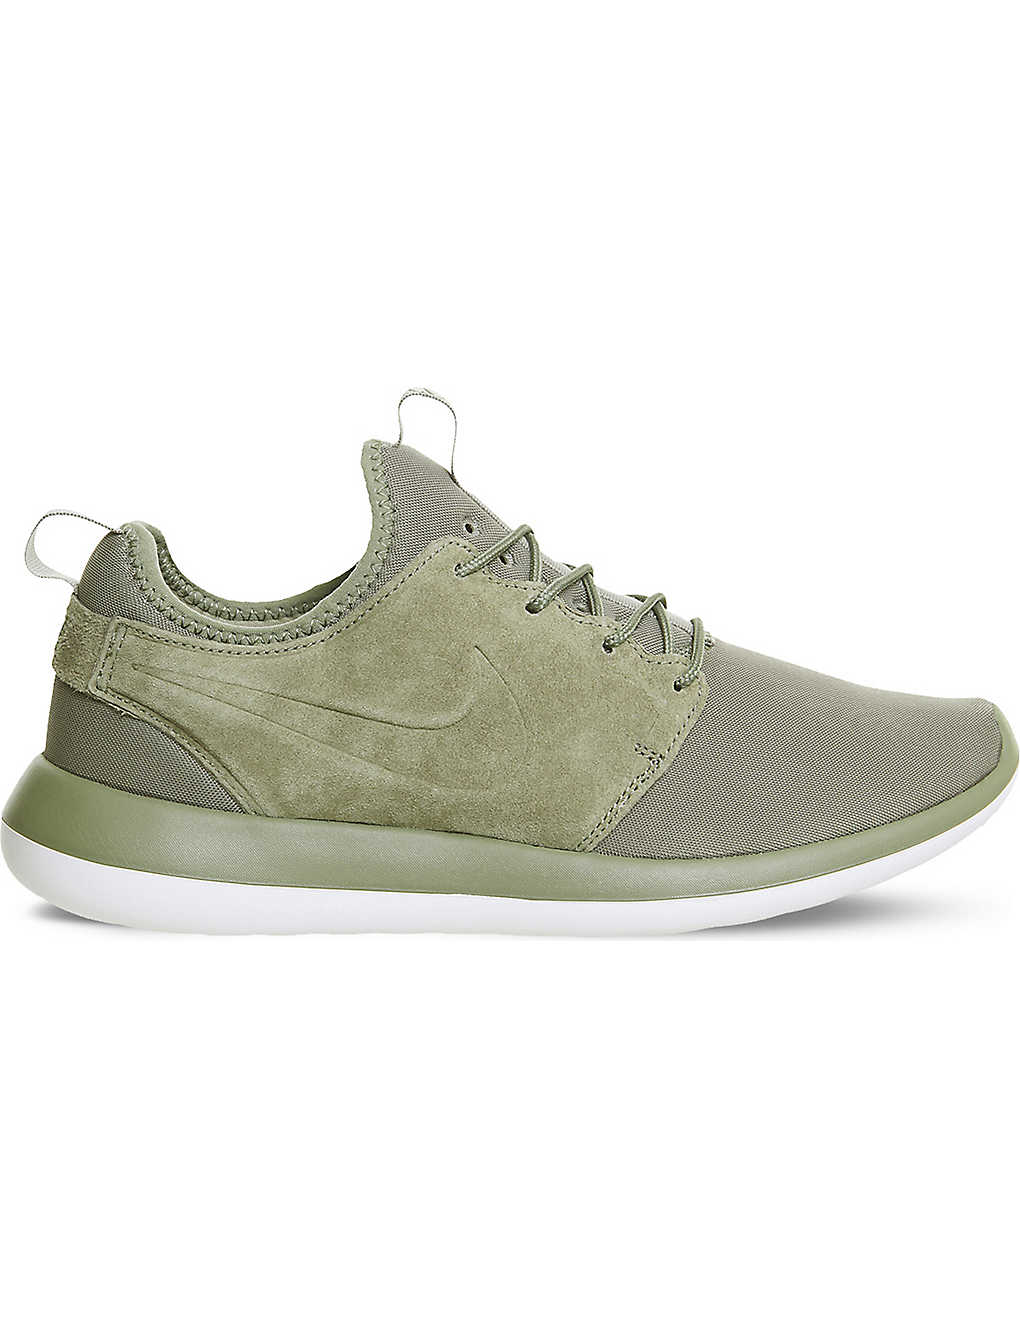 f713a5fe44695 NIKE - Roshe Two M Trooper suede and mesh trainers